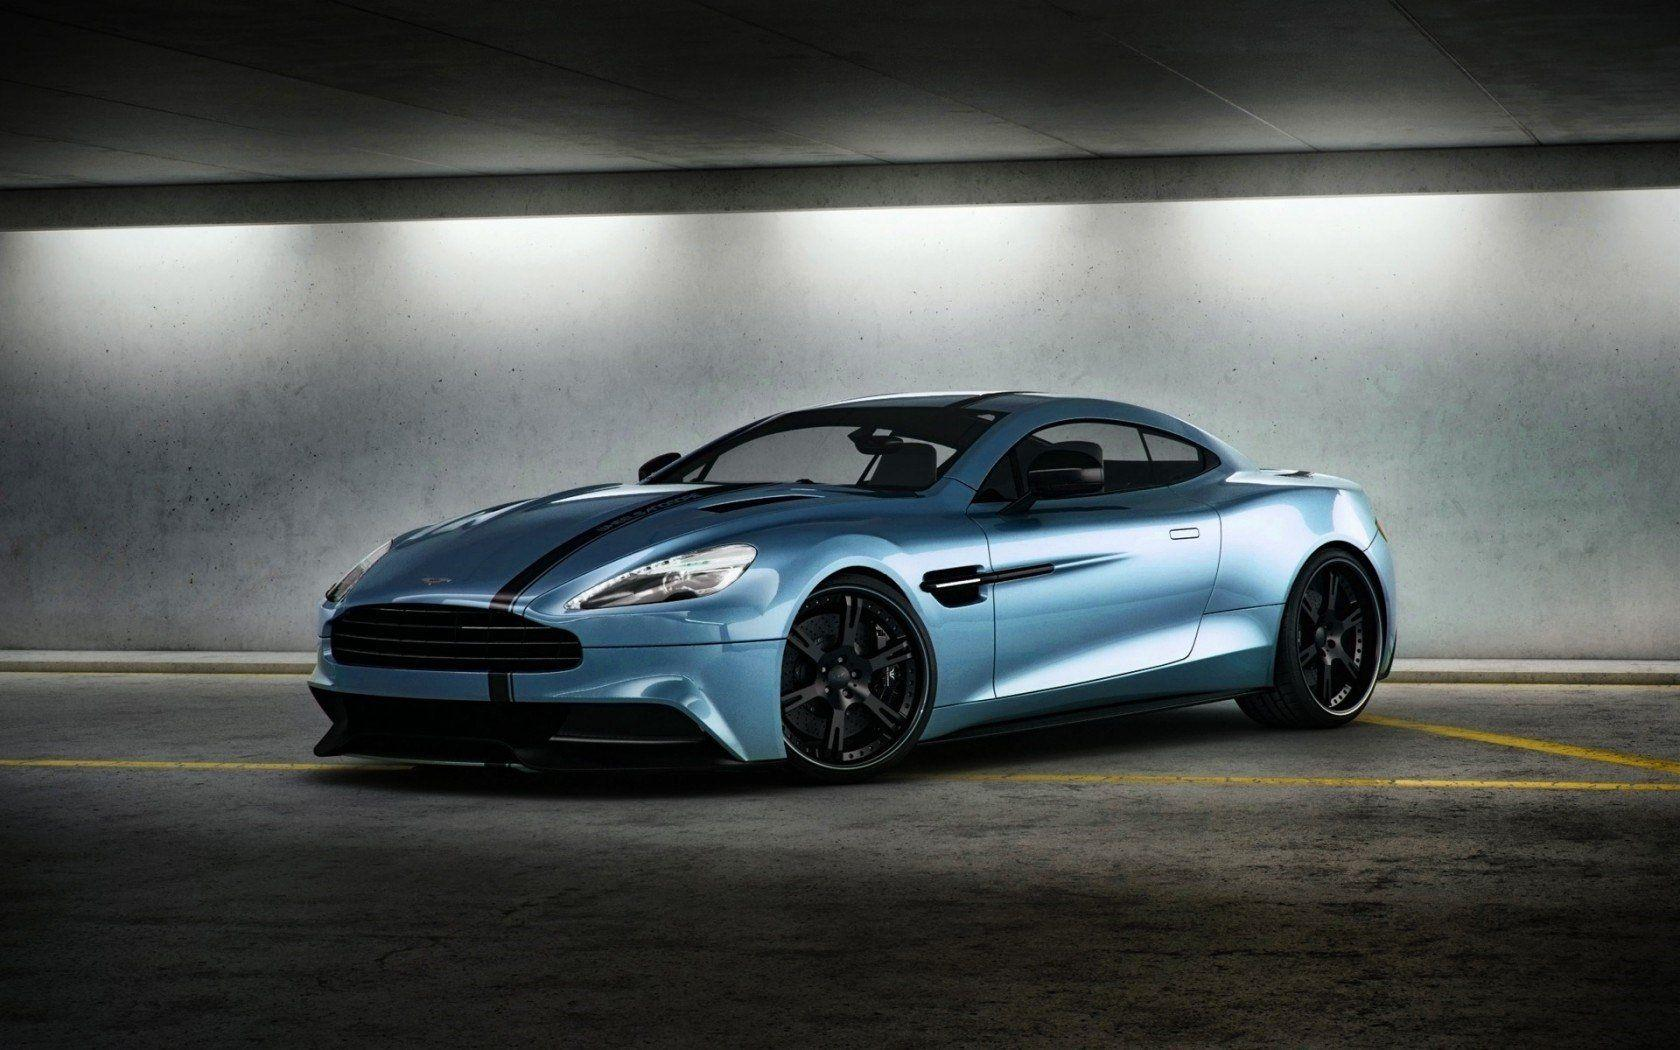 Aston Martin Vanquish Wallpapers and Backgrounds Image